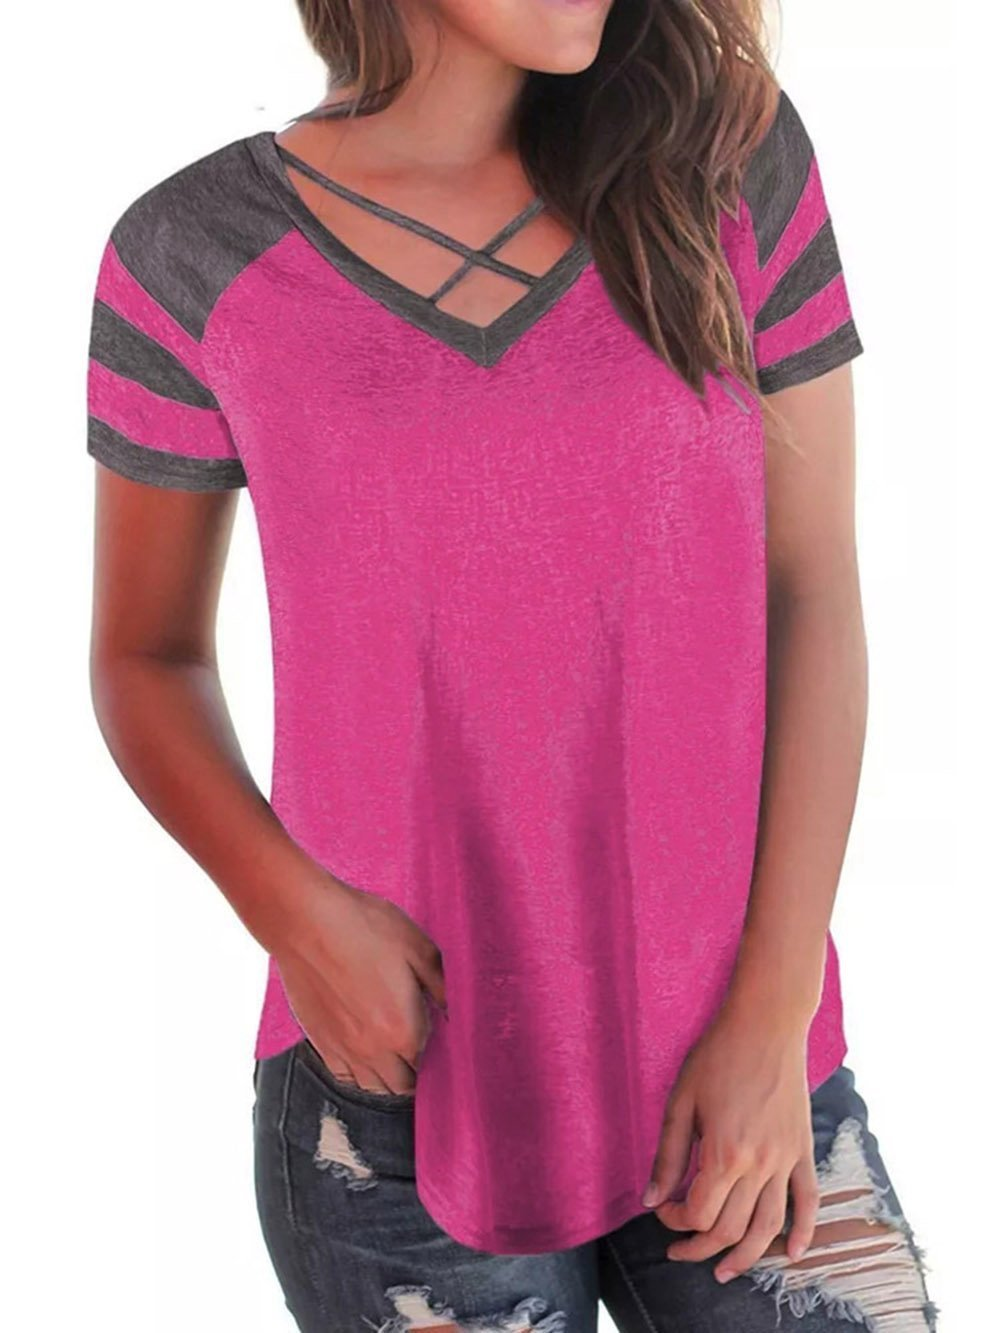 Womens Summer Short Raglan Sleeve V Neck T Shirts Loose Criss Cross Curve Hem Casual Tee Tops